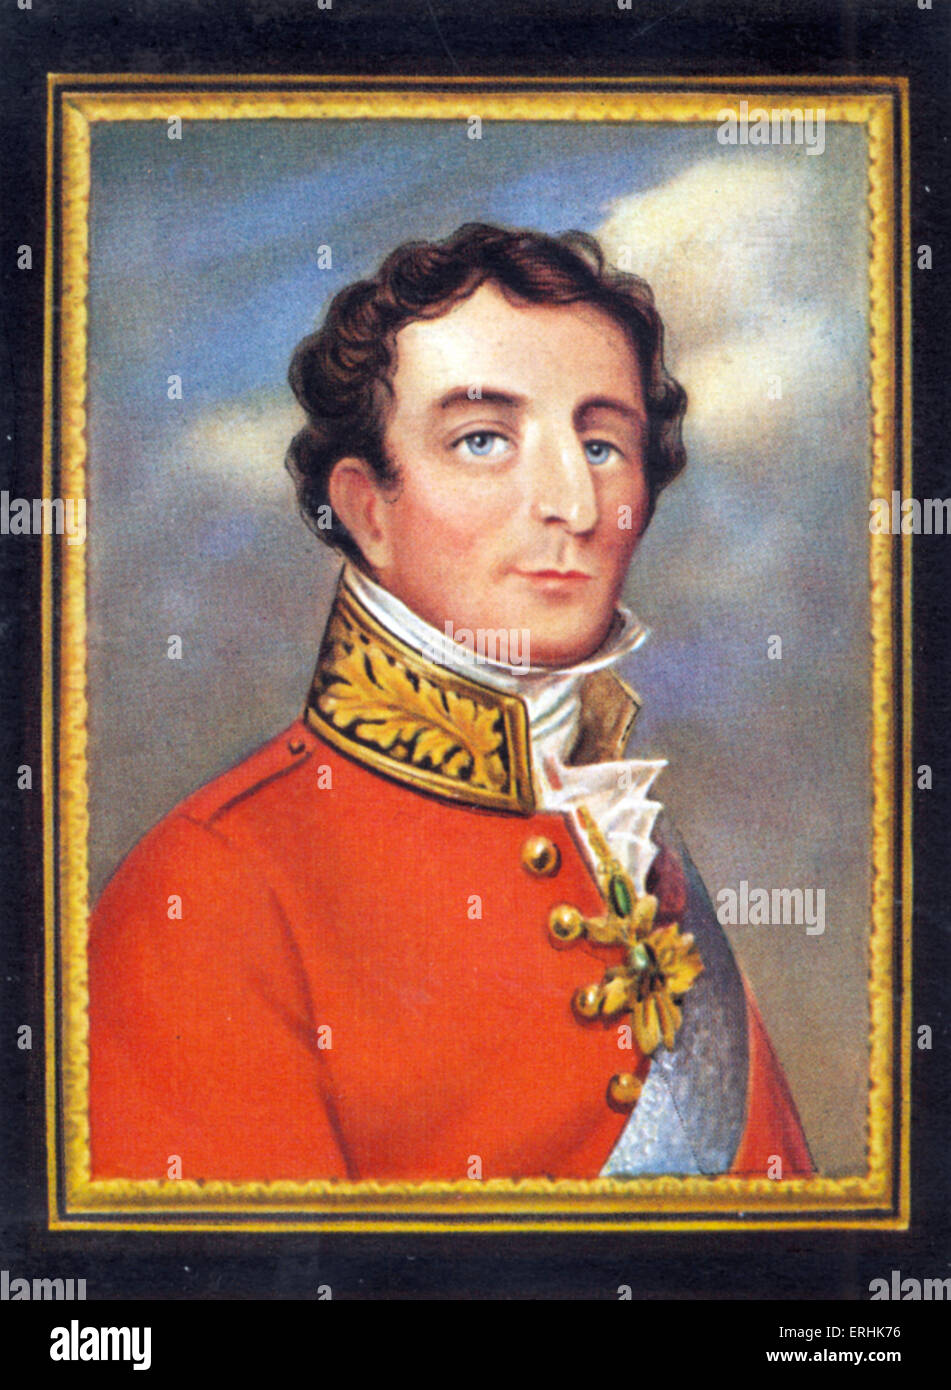 Arthur Wellesley, 1st Duke of Wellington. Portrait of the British soldier ans statesman. 1 May 1769 – 14 September - Stock Image